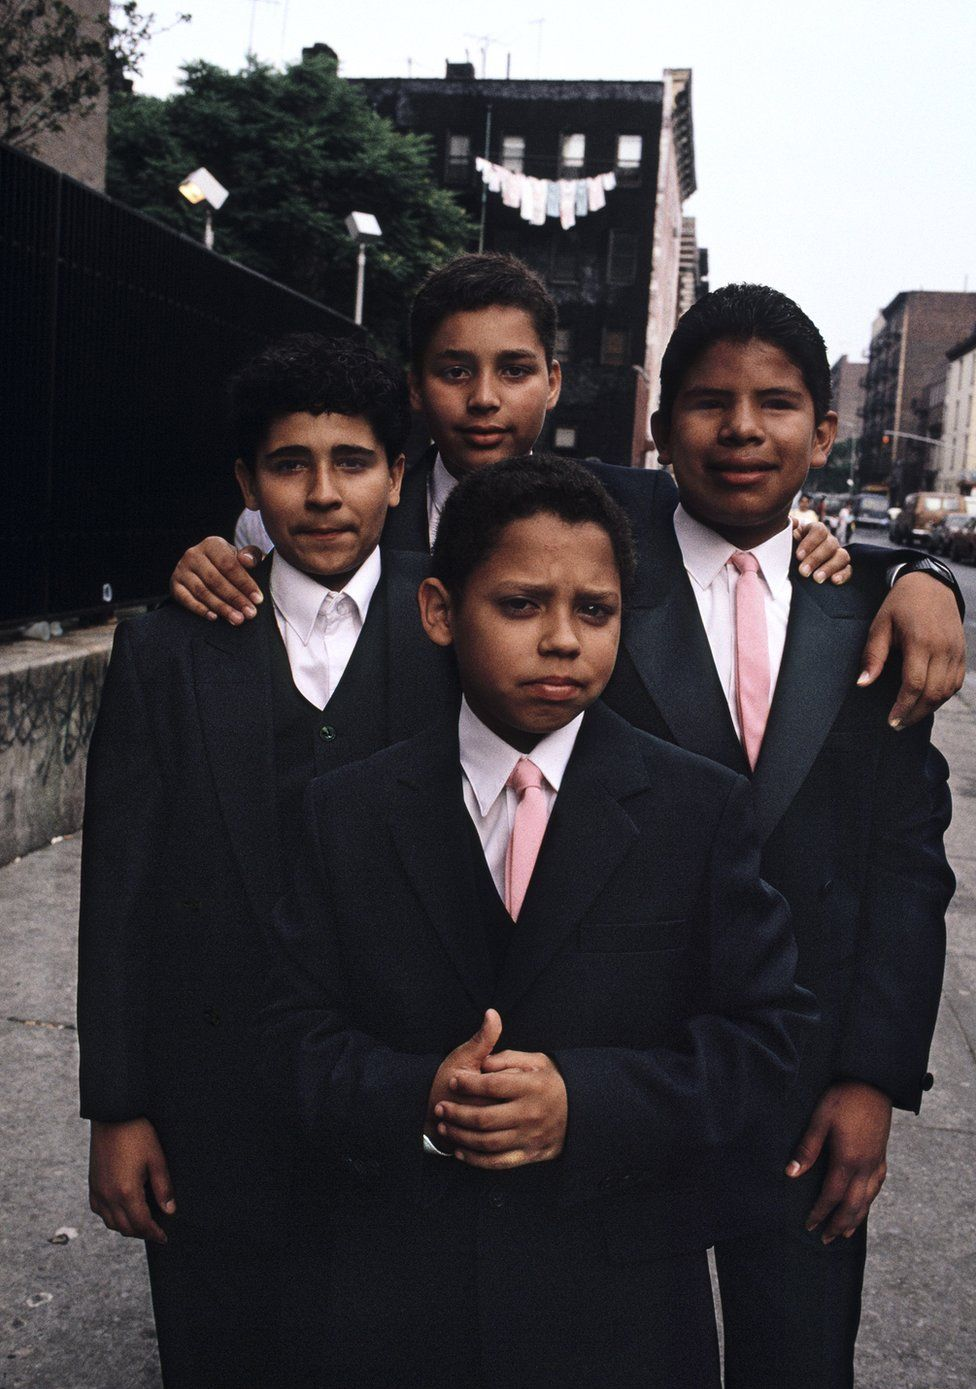 A group of young men in suits